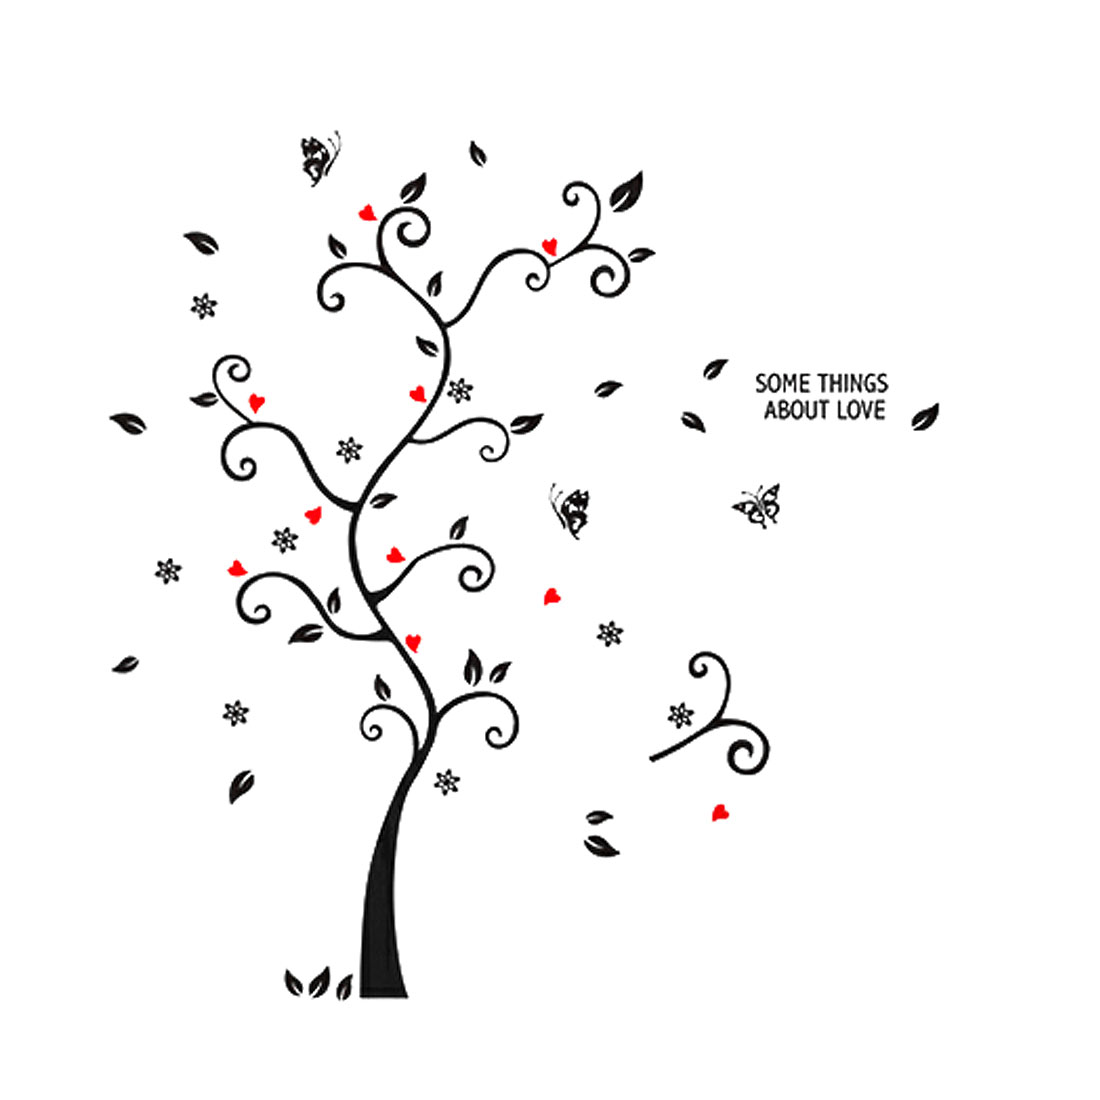 Black Tree Branches Design Wall Art Sticker Decal Wallpaper Decor